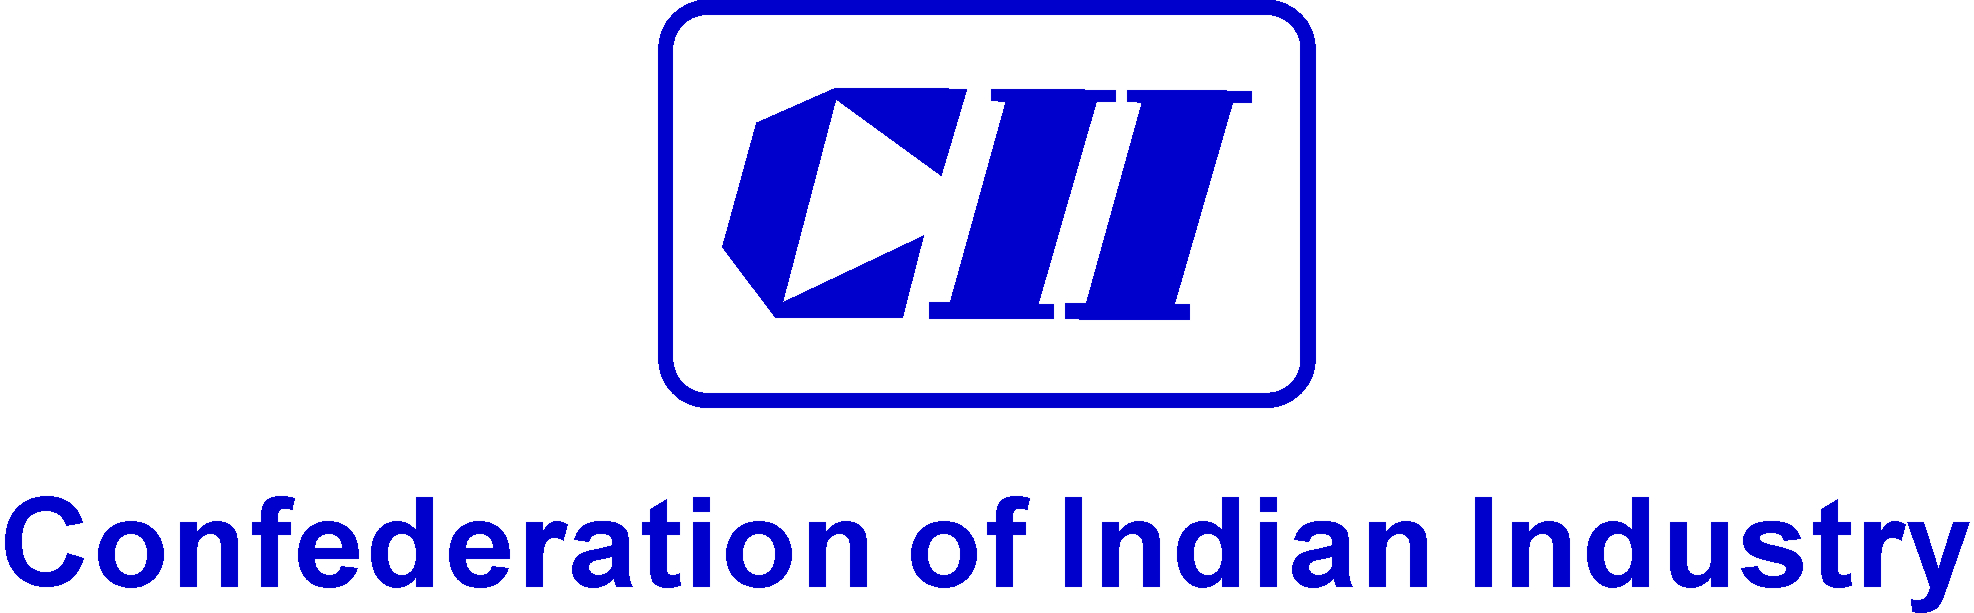 CII colour